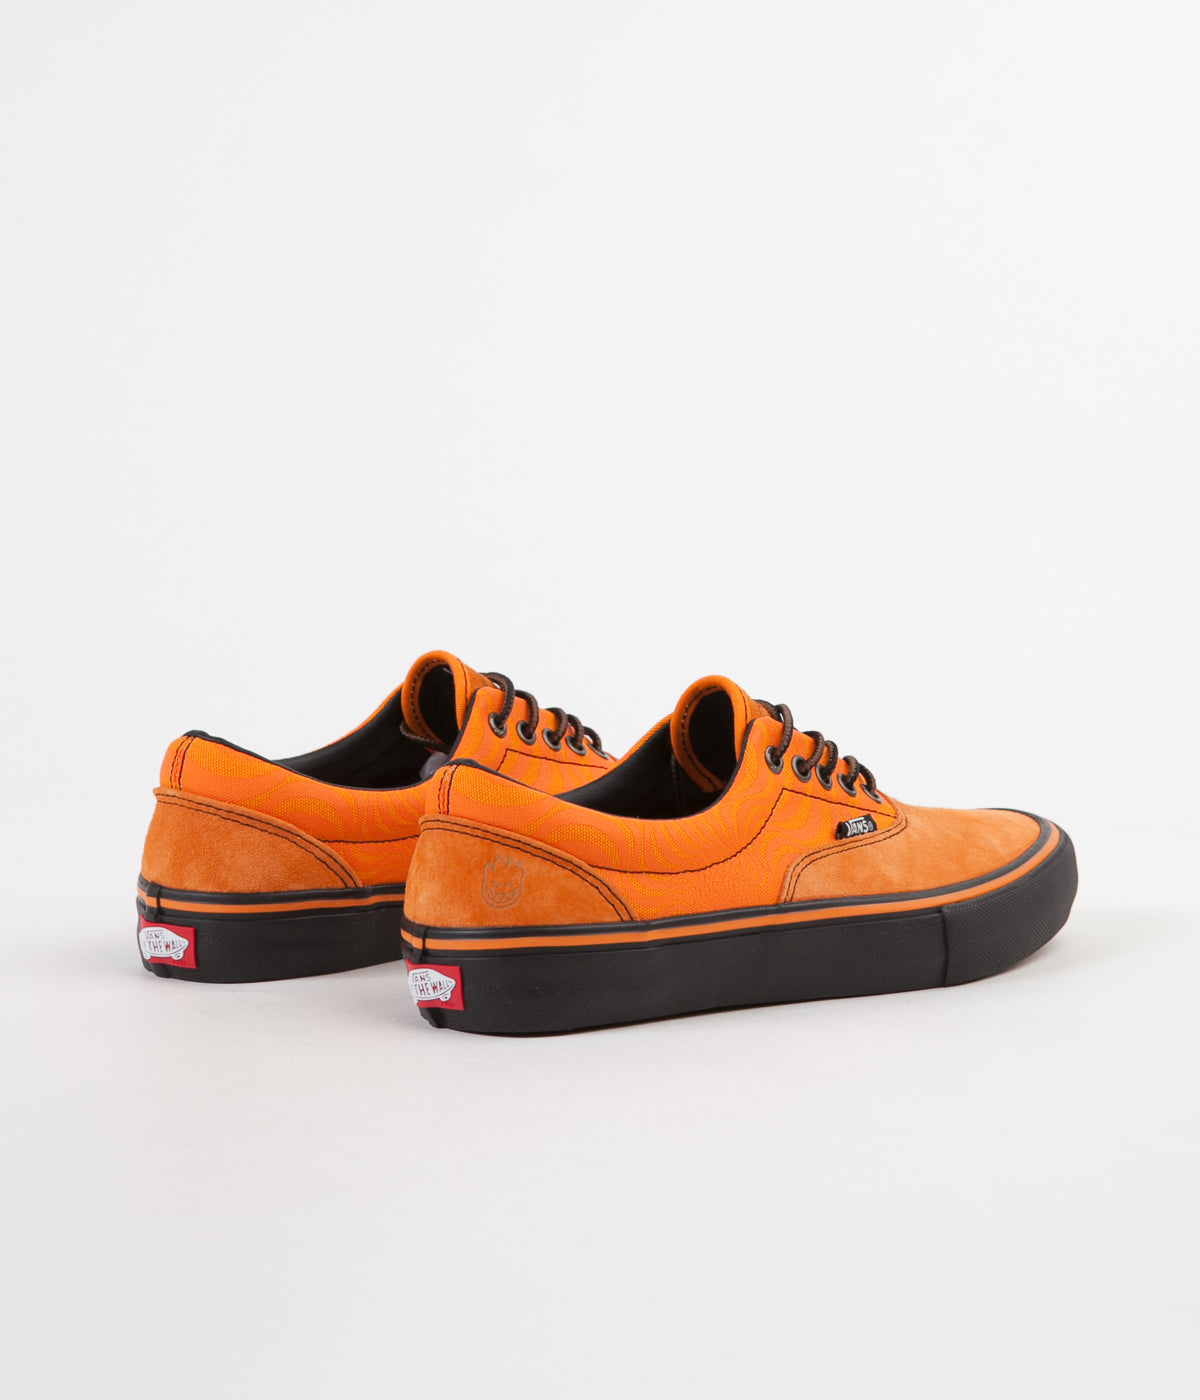 Vans x Spitfire Era Pro Shoes - Cardiel / Orange